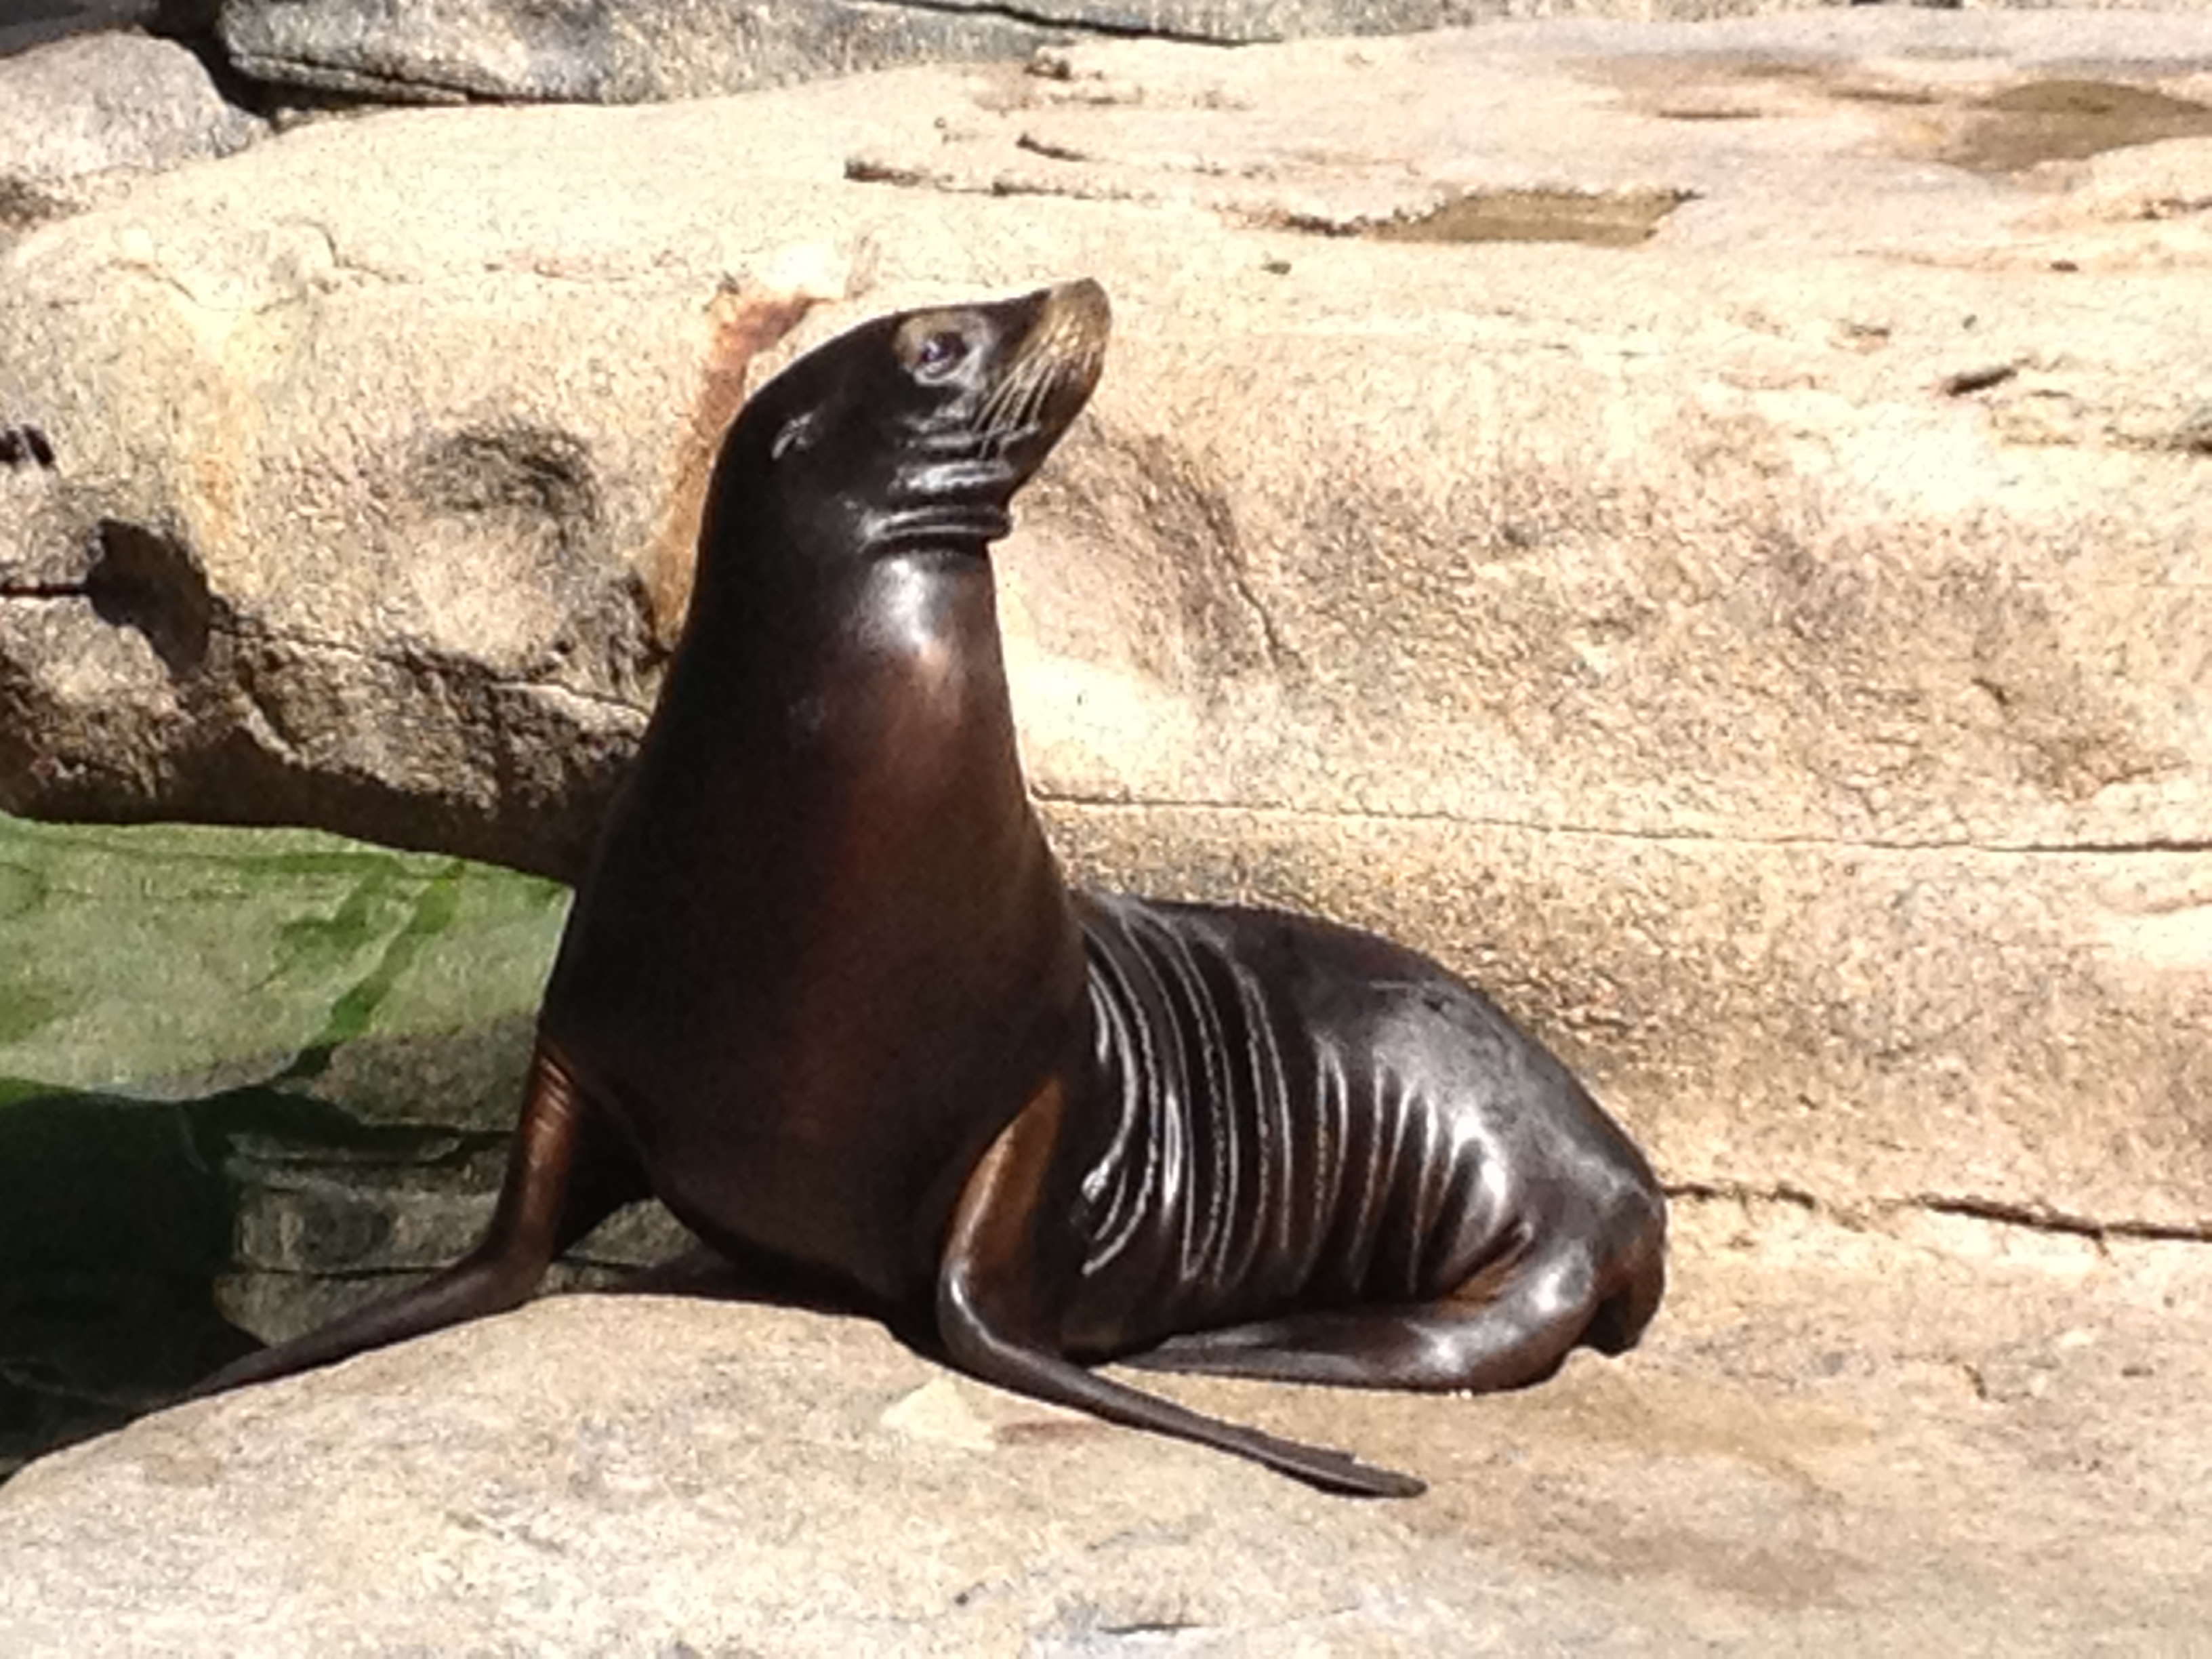 The unprecedented death of young Sea Lions in California